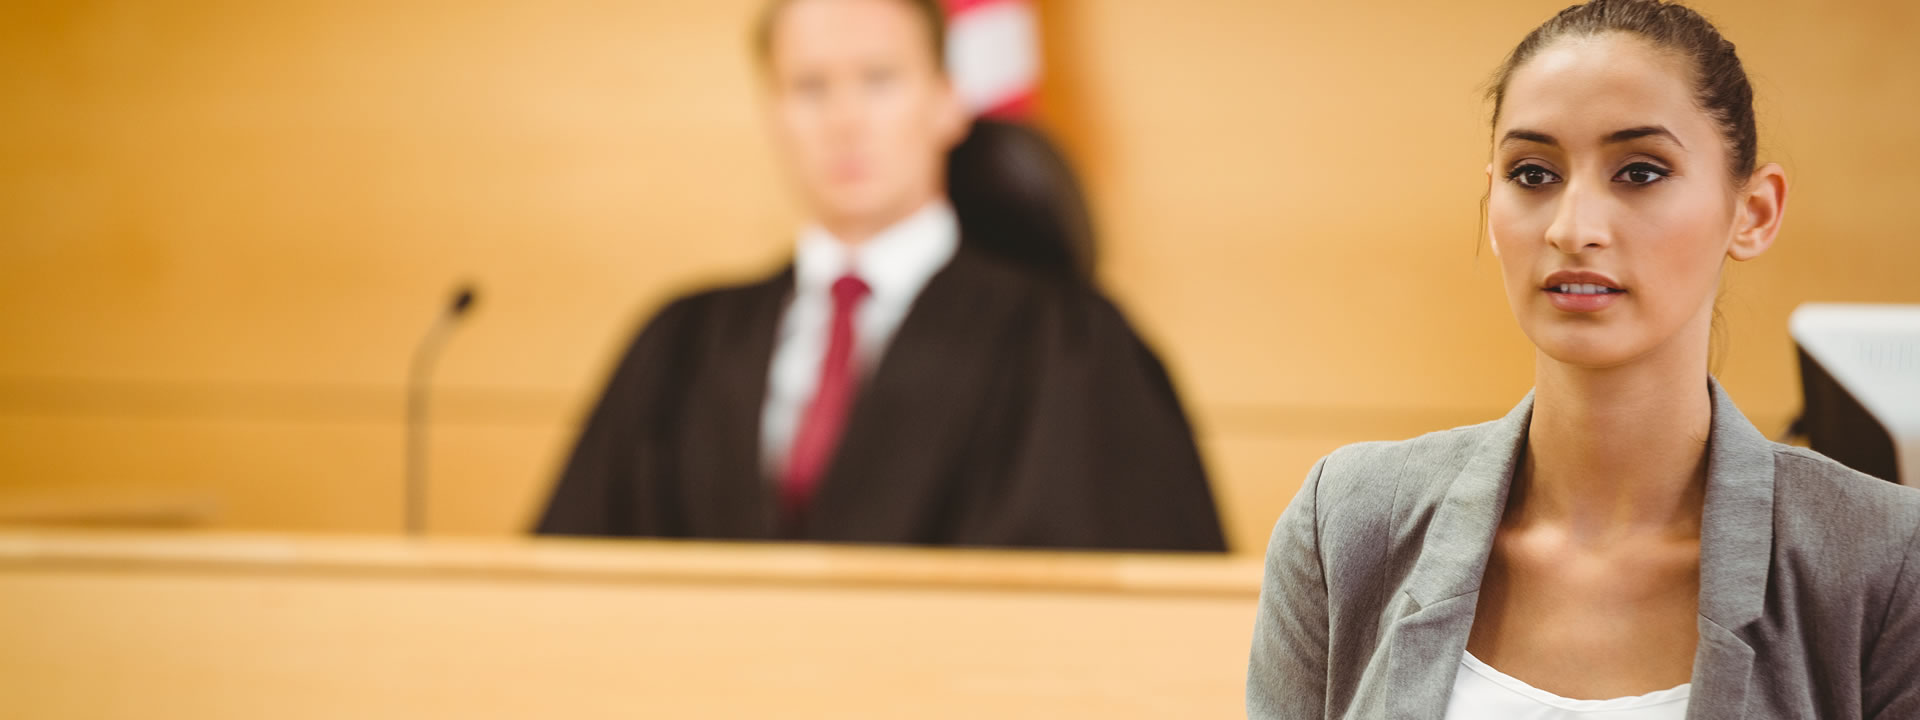 Women in court looking serious